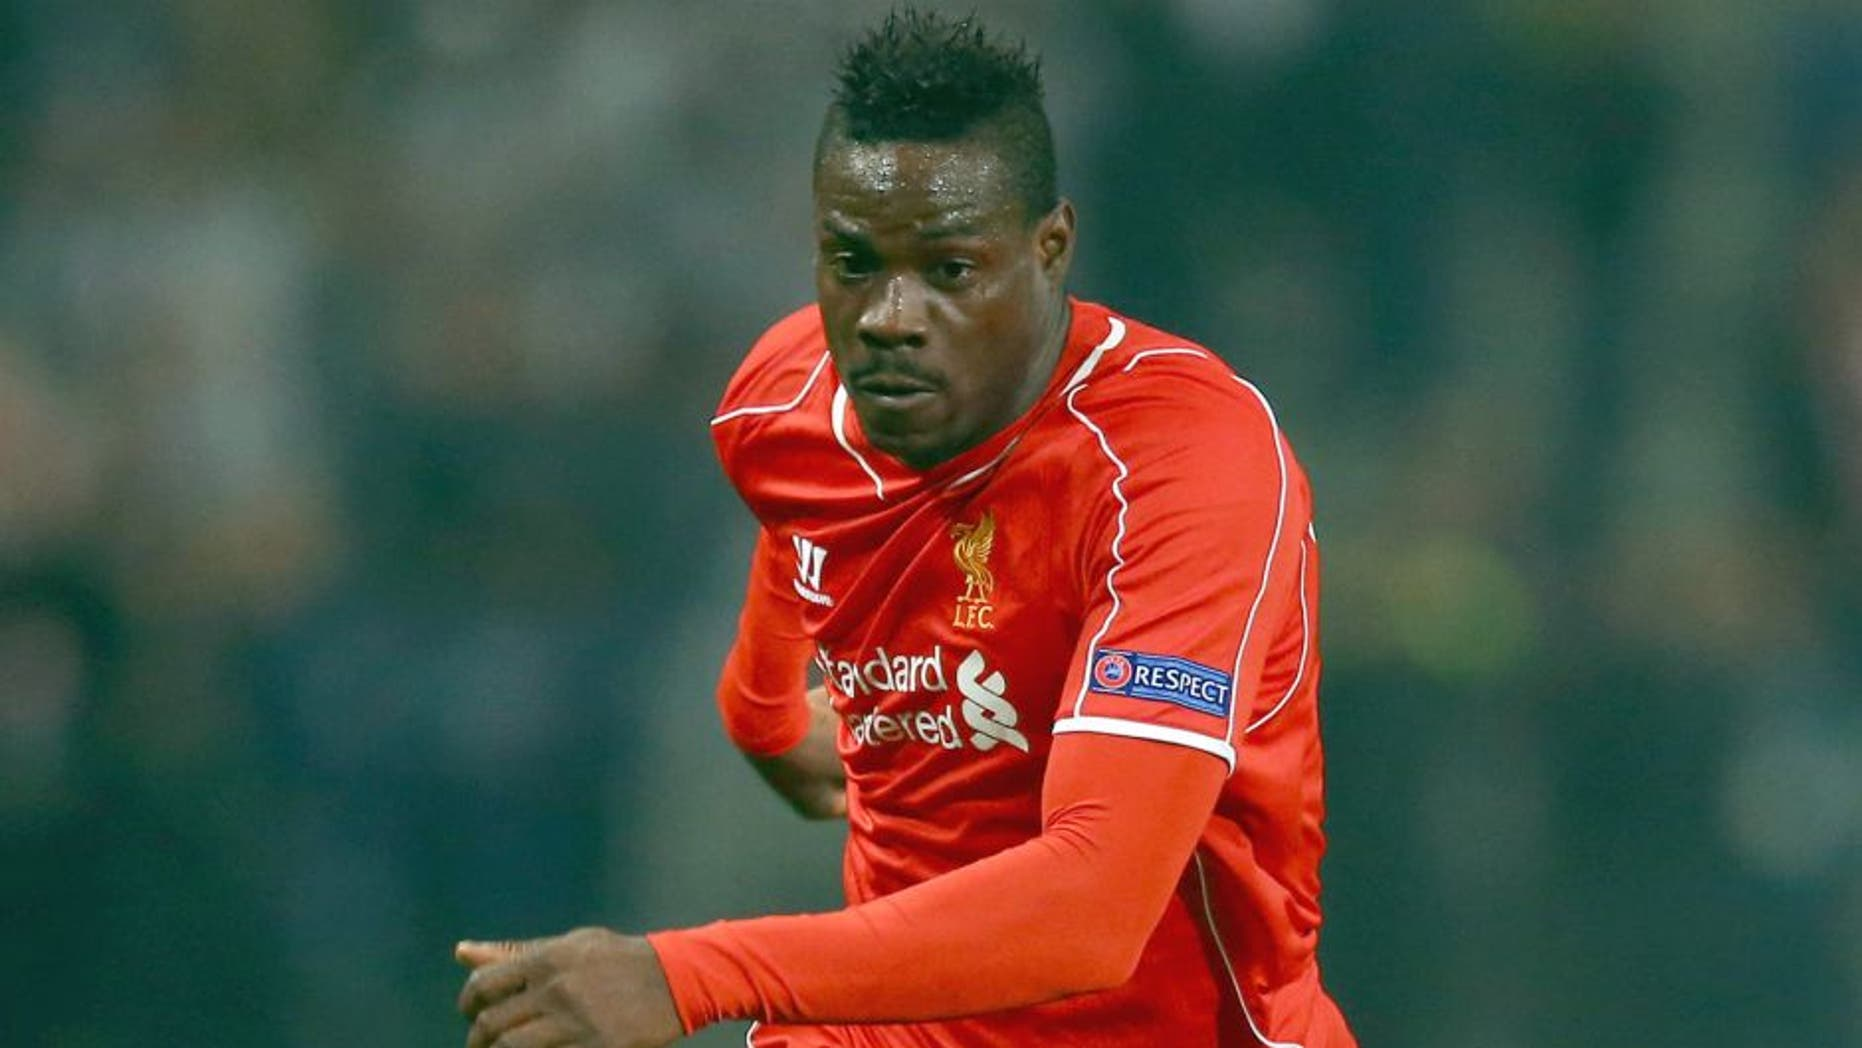 ISTANBUL, TURKEY - FEBRUARY 26: Mario Balotelli of Liverpool during the 2nd leg of the UEFA Europa League Round of 32 match between Besiktas and Liverpool at the Ataturk Olympic Stadium on February 26, 2015 in Istanbul, Turkey. (Photo by Richard Heathcote/Getty Images)